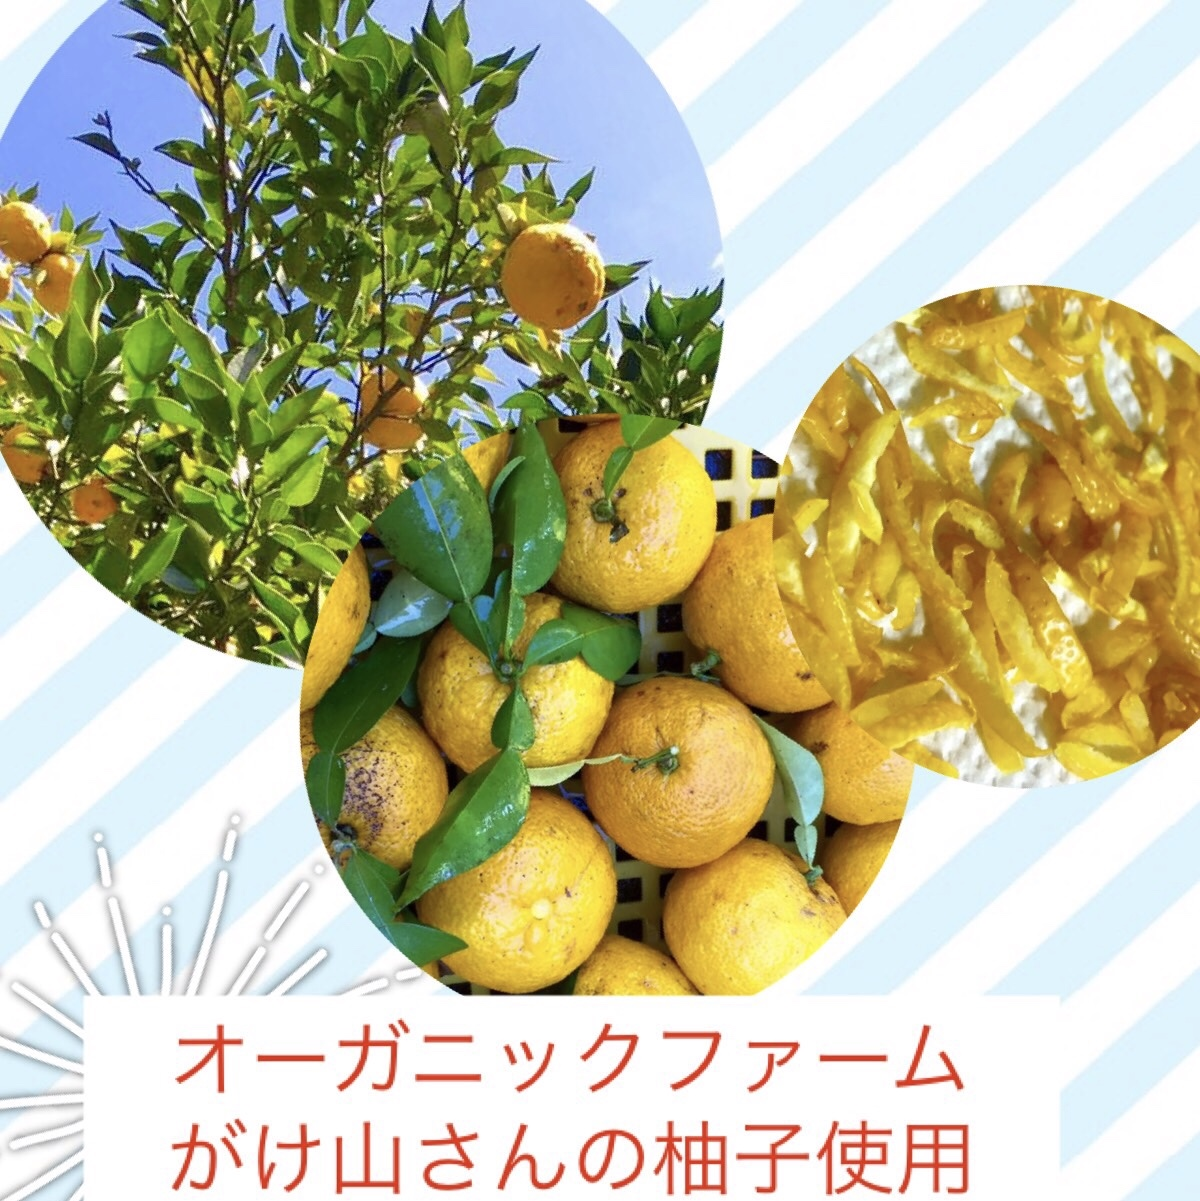 https://img14.shop-pro.jp/PA01185/173/etc/yuzu-1.jpg?cmsp_timestamp=20190222192301